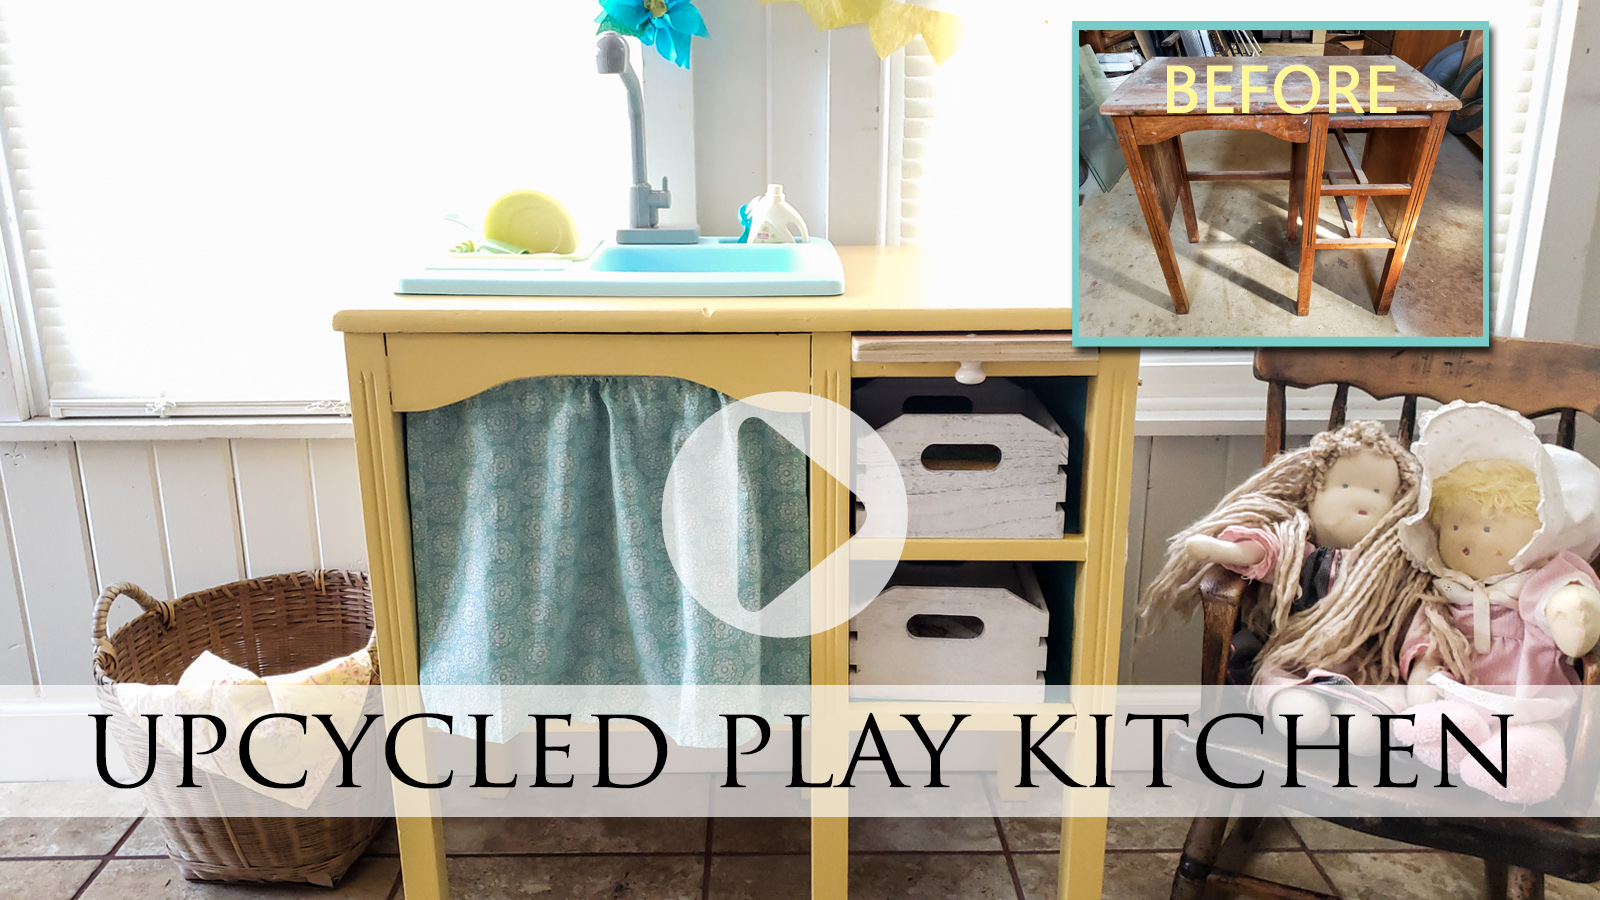 DIY Video Tutorial Upcycled Play Kitchen by Larissa of Prodigal Pieces | prodigalpieces.com